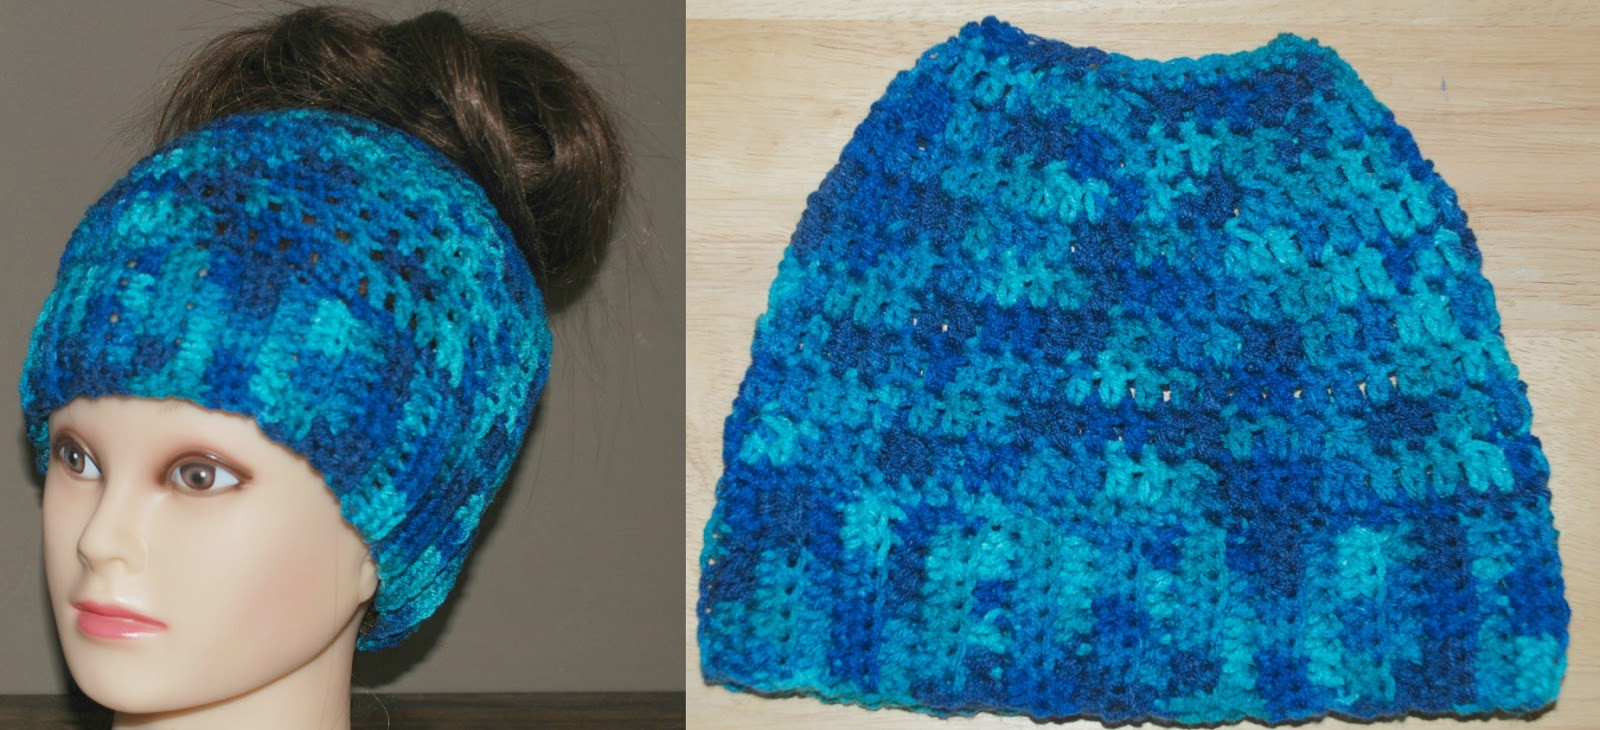 Beautiful Amy S Crochet Creative Creations Crochet Messy Bun Hat Free Messy Bun Hat Pattern Of Amazing 42 Ideas Free Messy Bun Hat Pattern